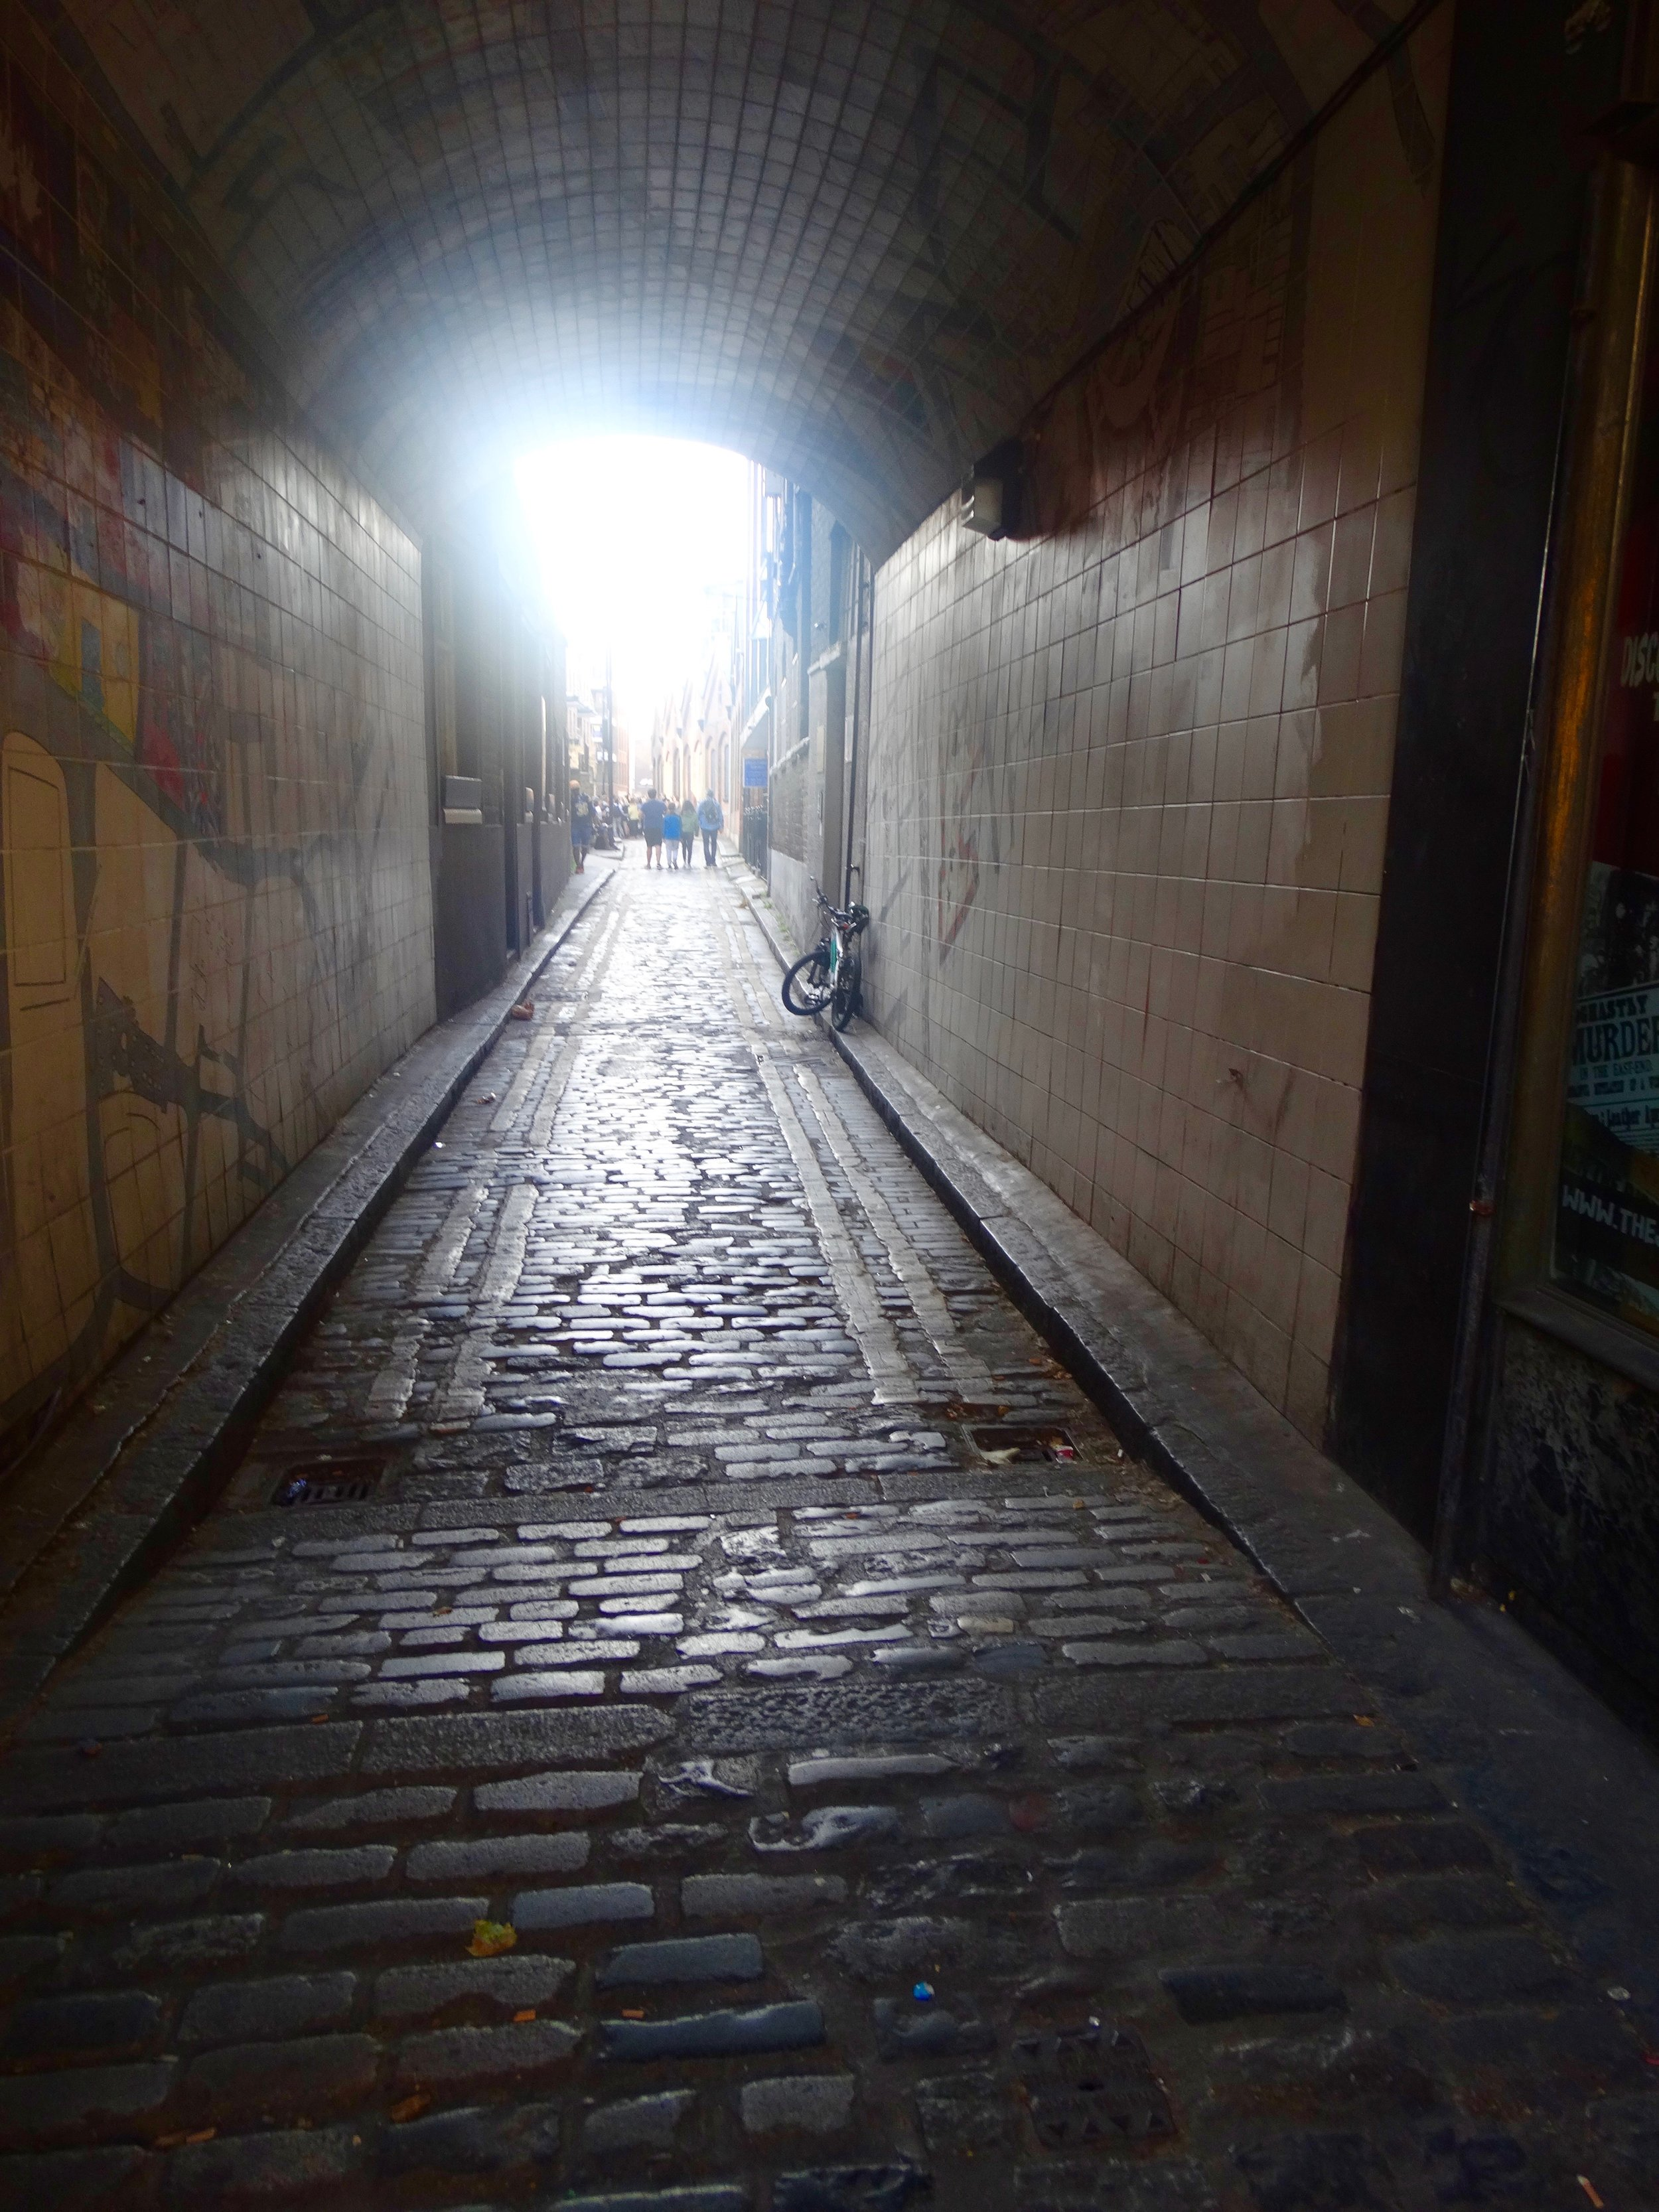 The cobblestones are the original stones that were on the street when the Ripper committed his crimes.